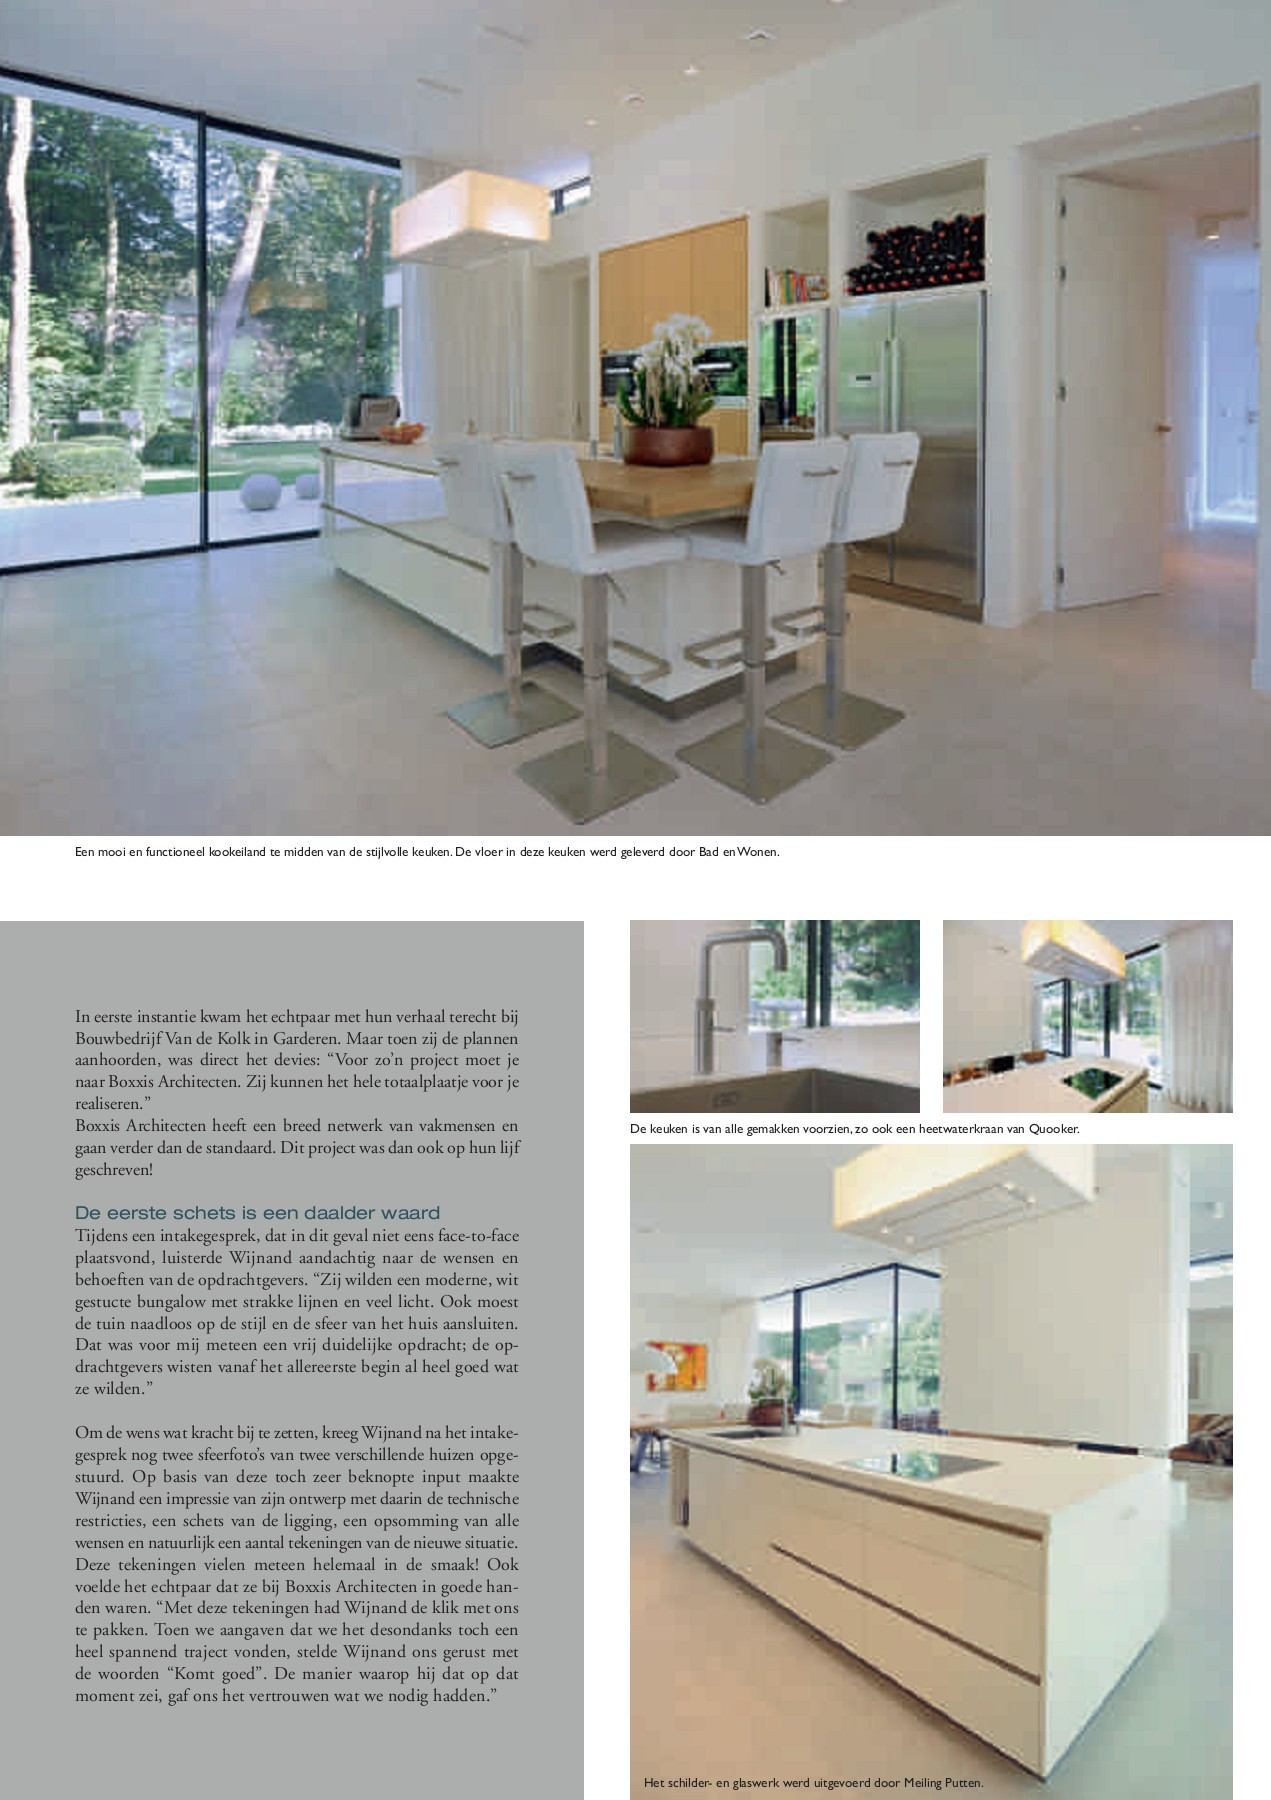 Meiling Interieur Putten The Art Of Living Nummer 5 2016 Nl Pages 101 150 Text